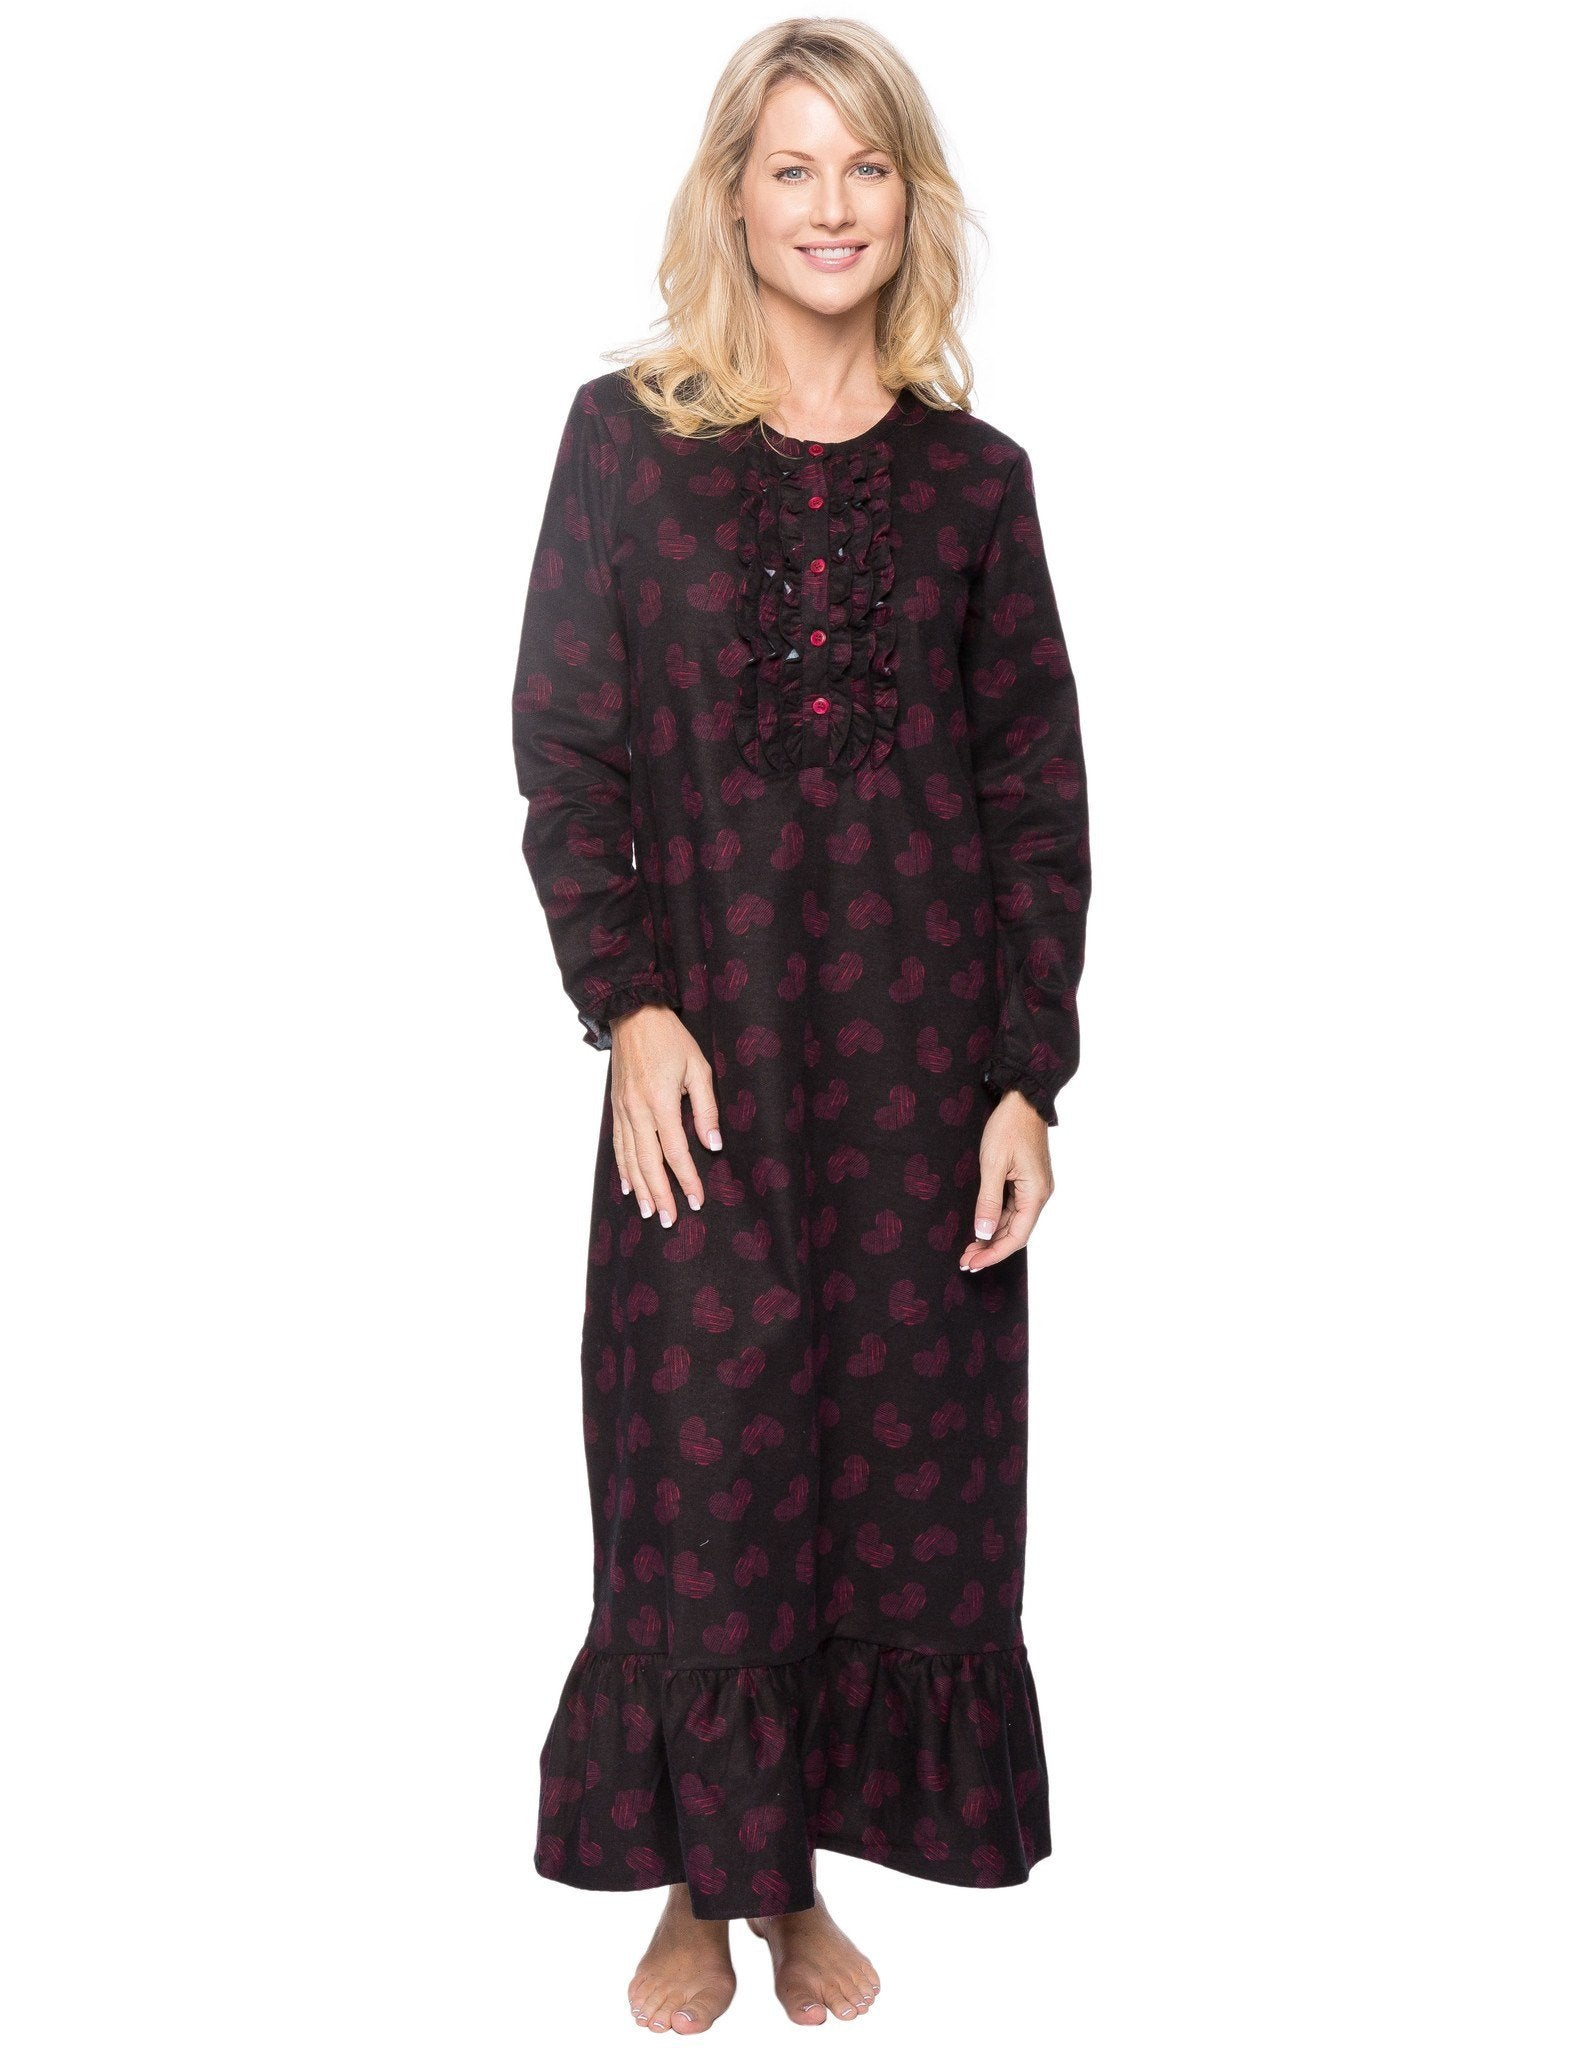 Women's Premium Flannel Long Gown - Hearts Black/Red